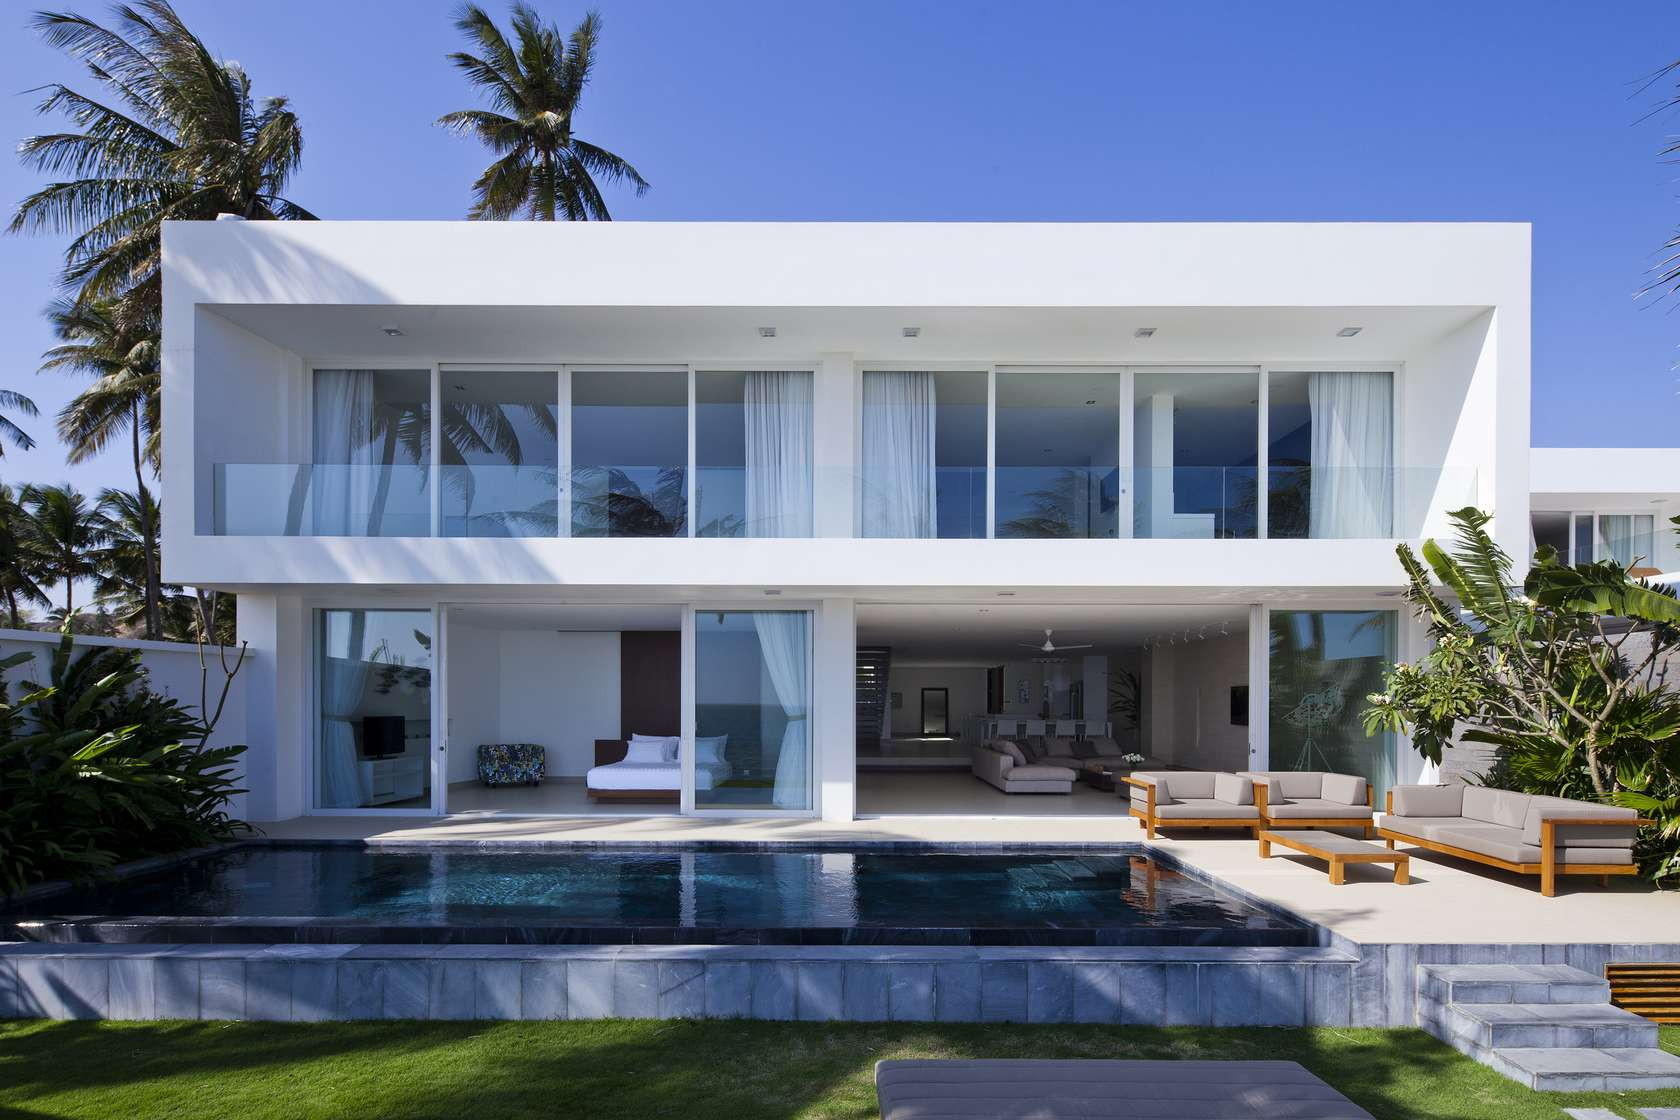 Private beach villas offer spectacular ocean views and for Coastal style house plans